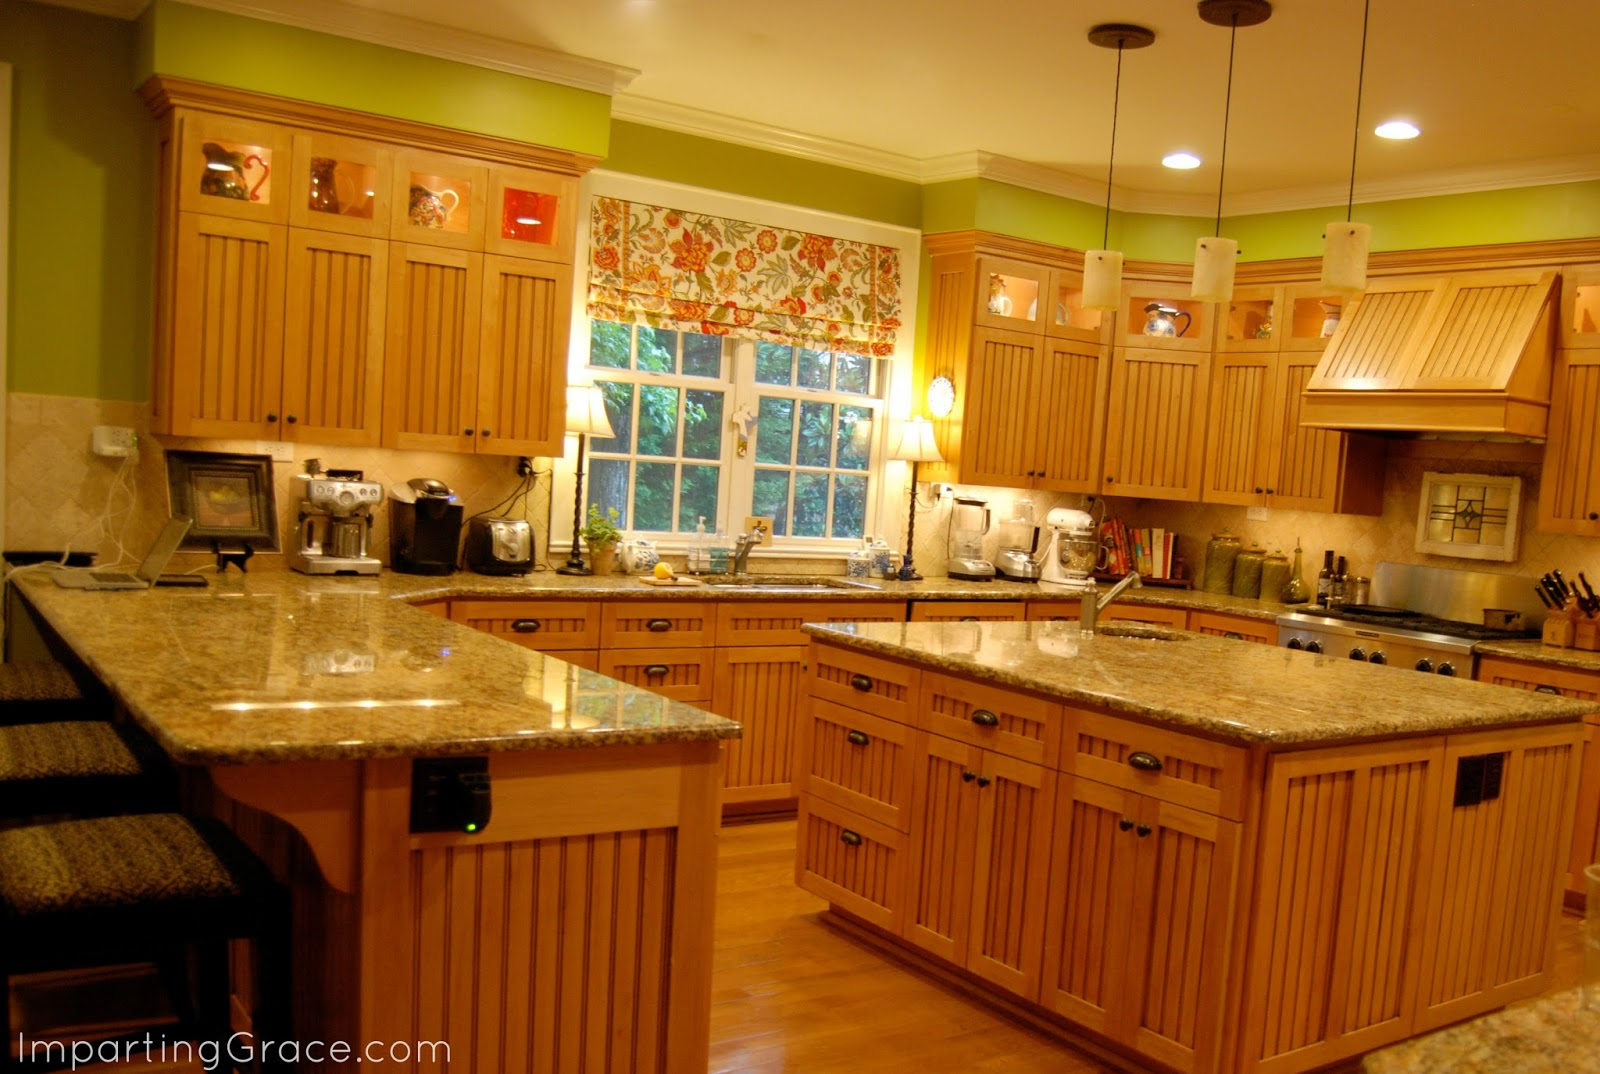 Imparting Grace: Help with kitchen design decision